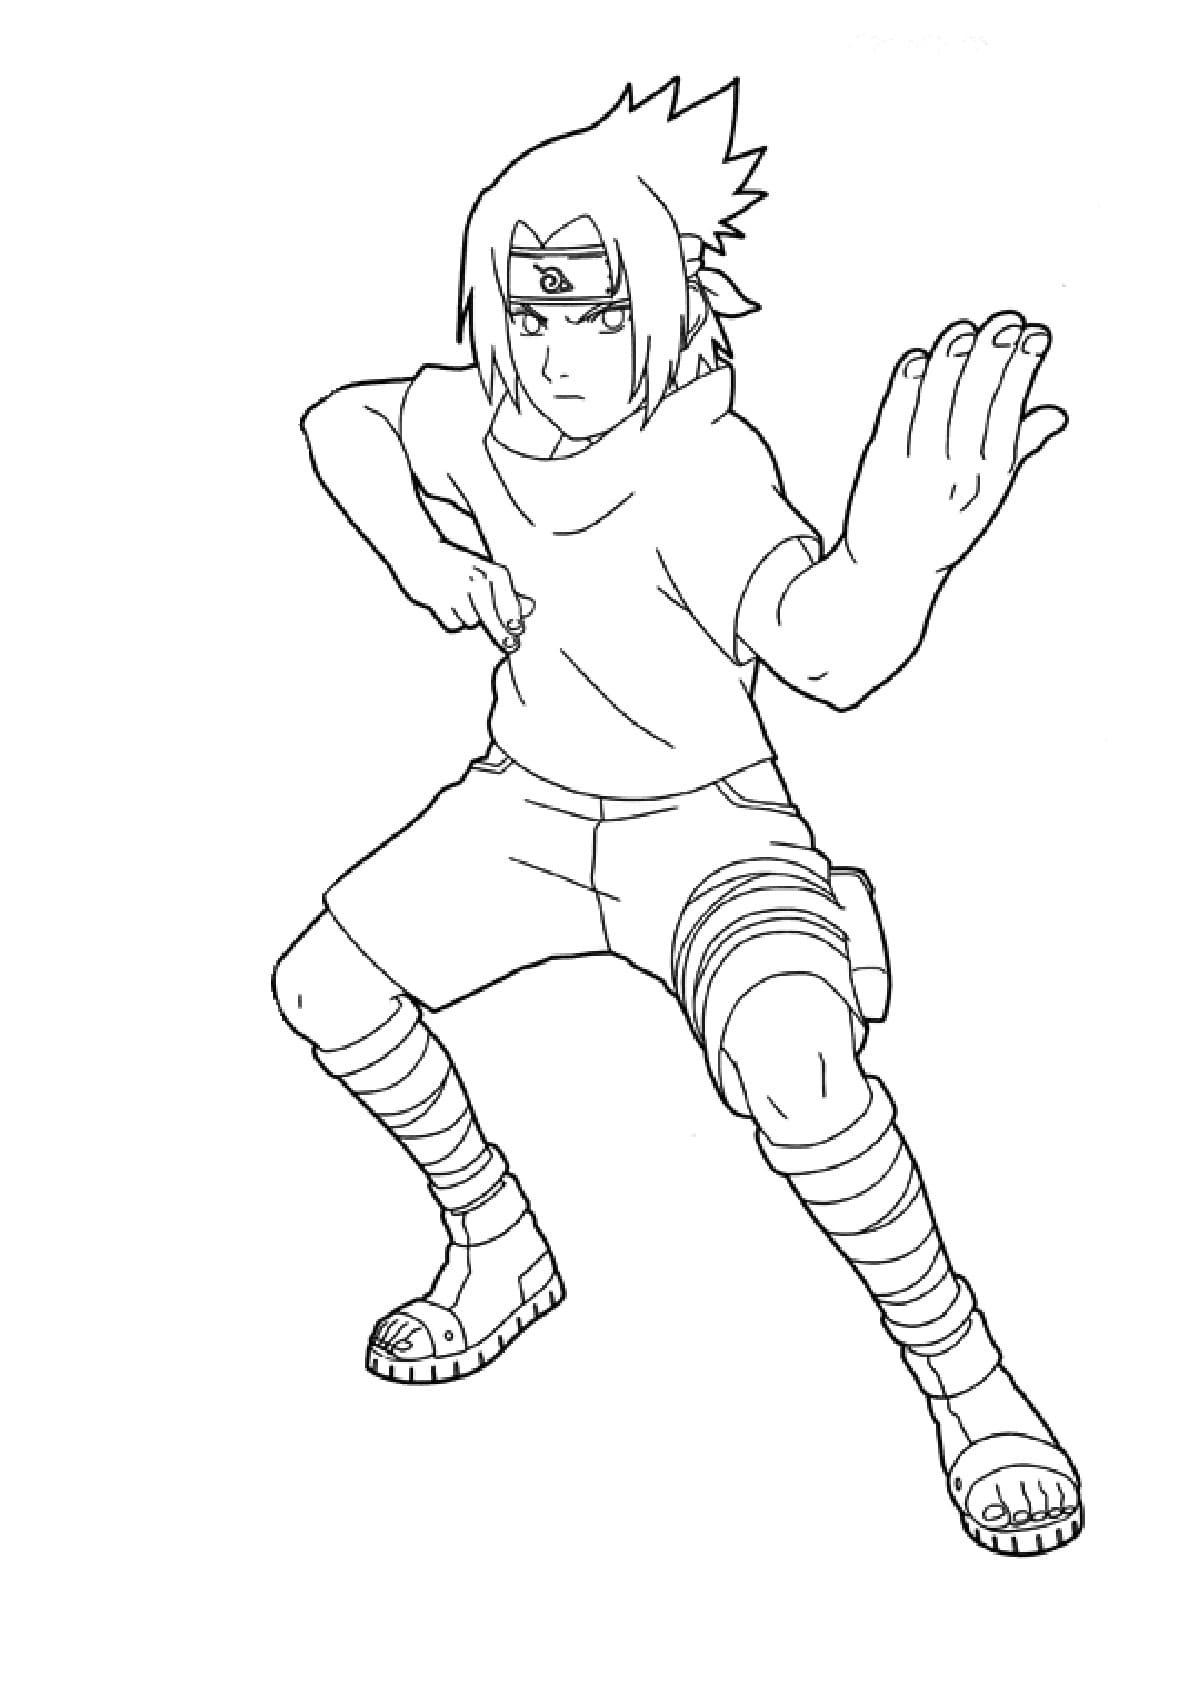 Naruto Coloring Pages 100 Images Free Printable